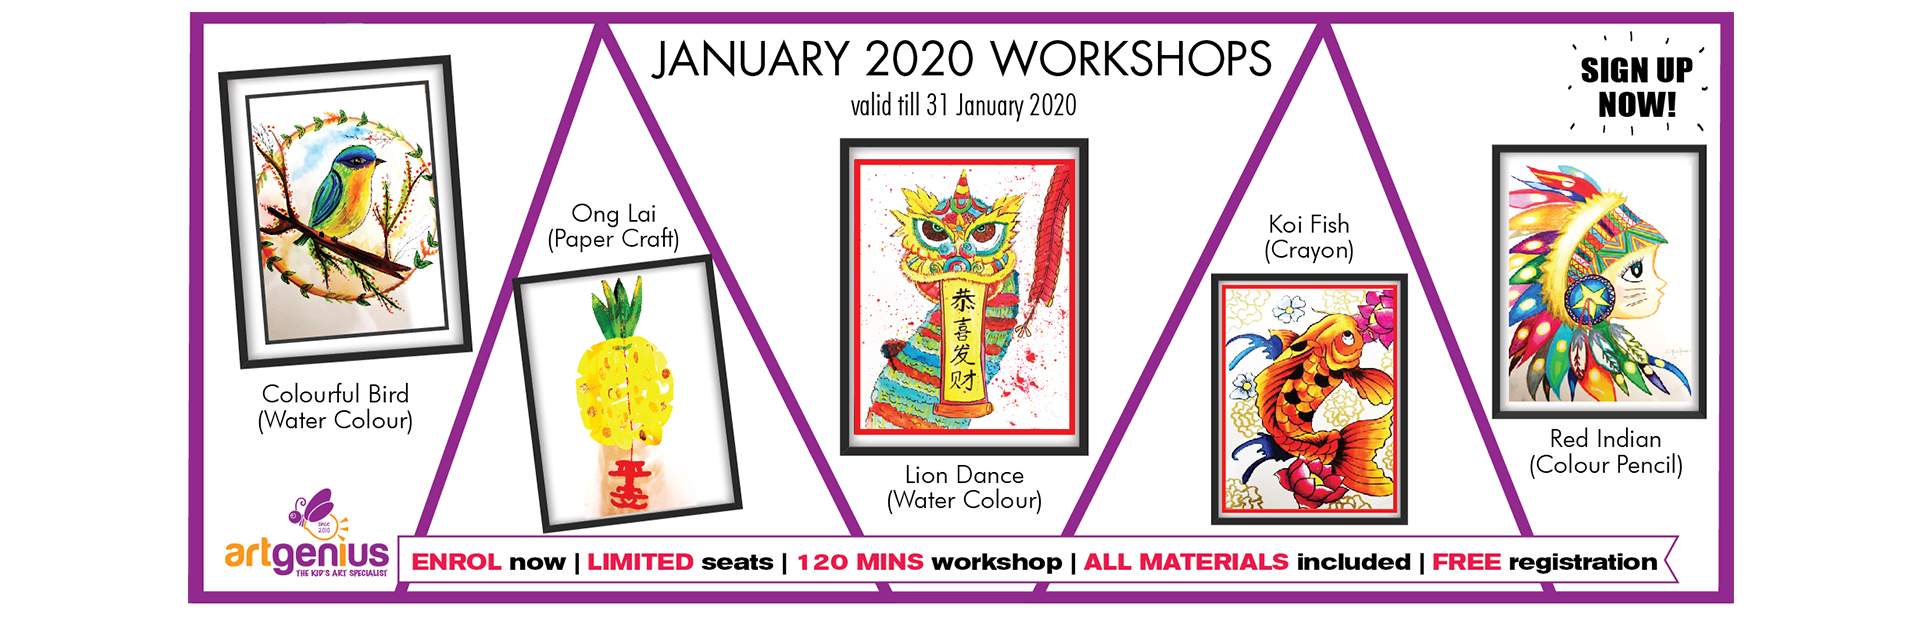 January-2020-workshops-web-banner-2